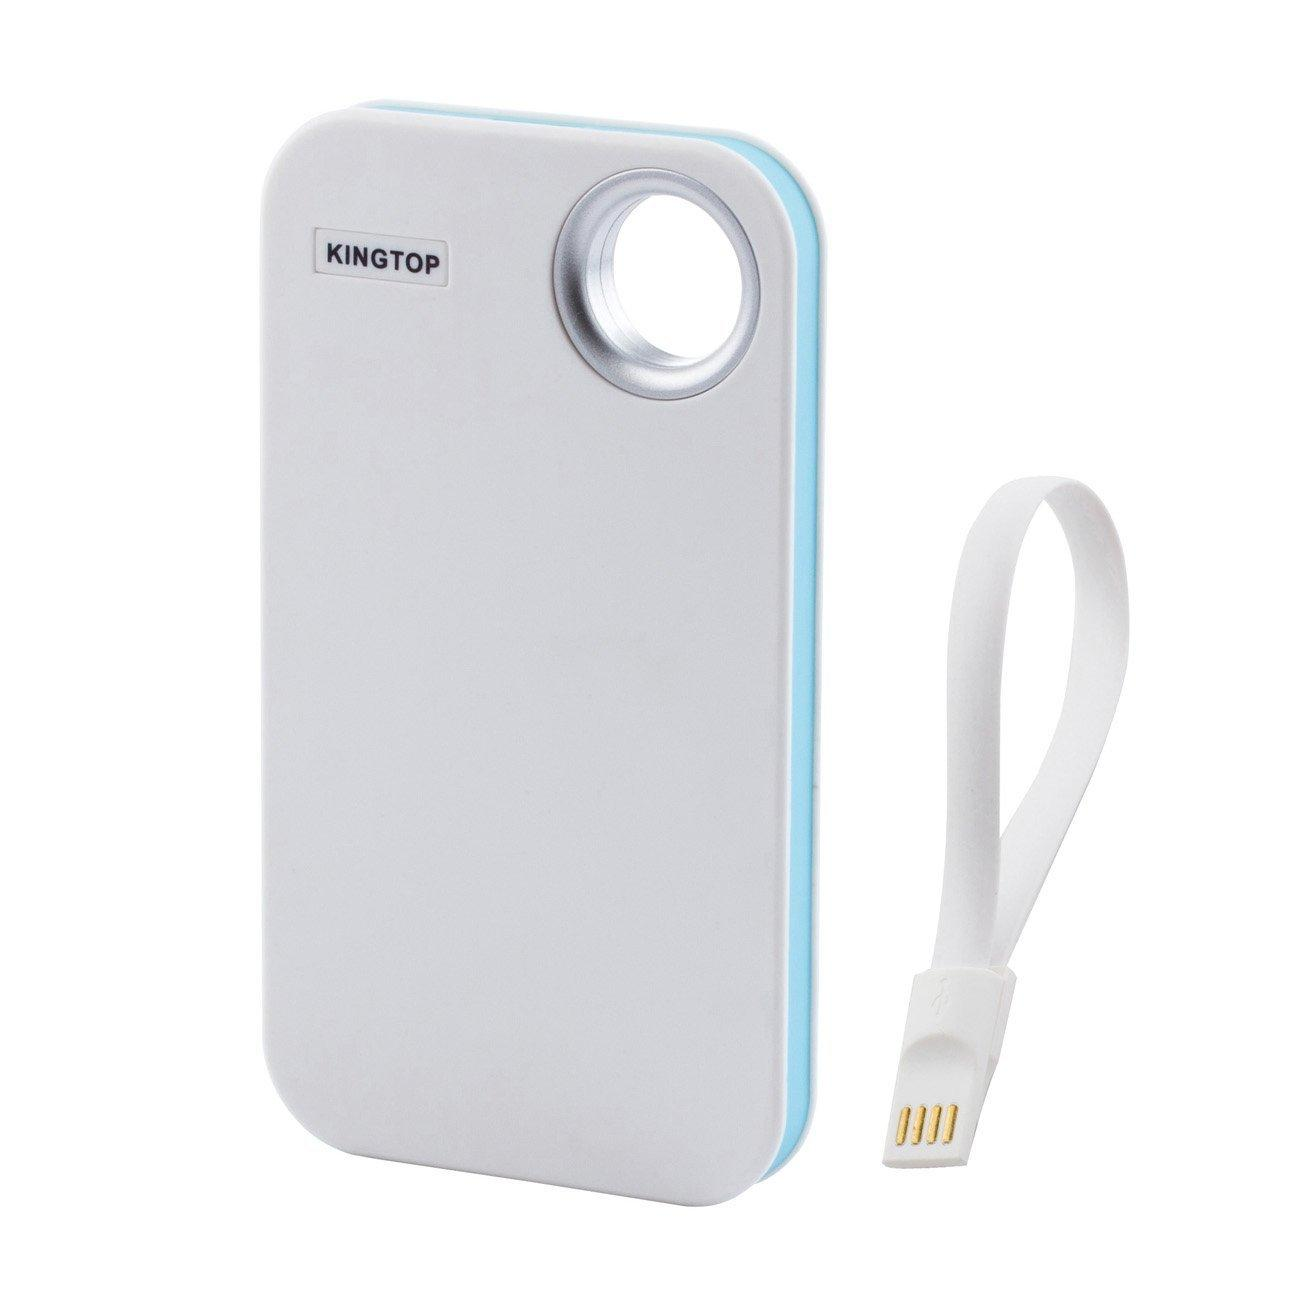 Kingtop 6000mah Portable Power Bank